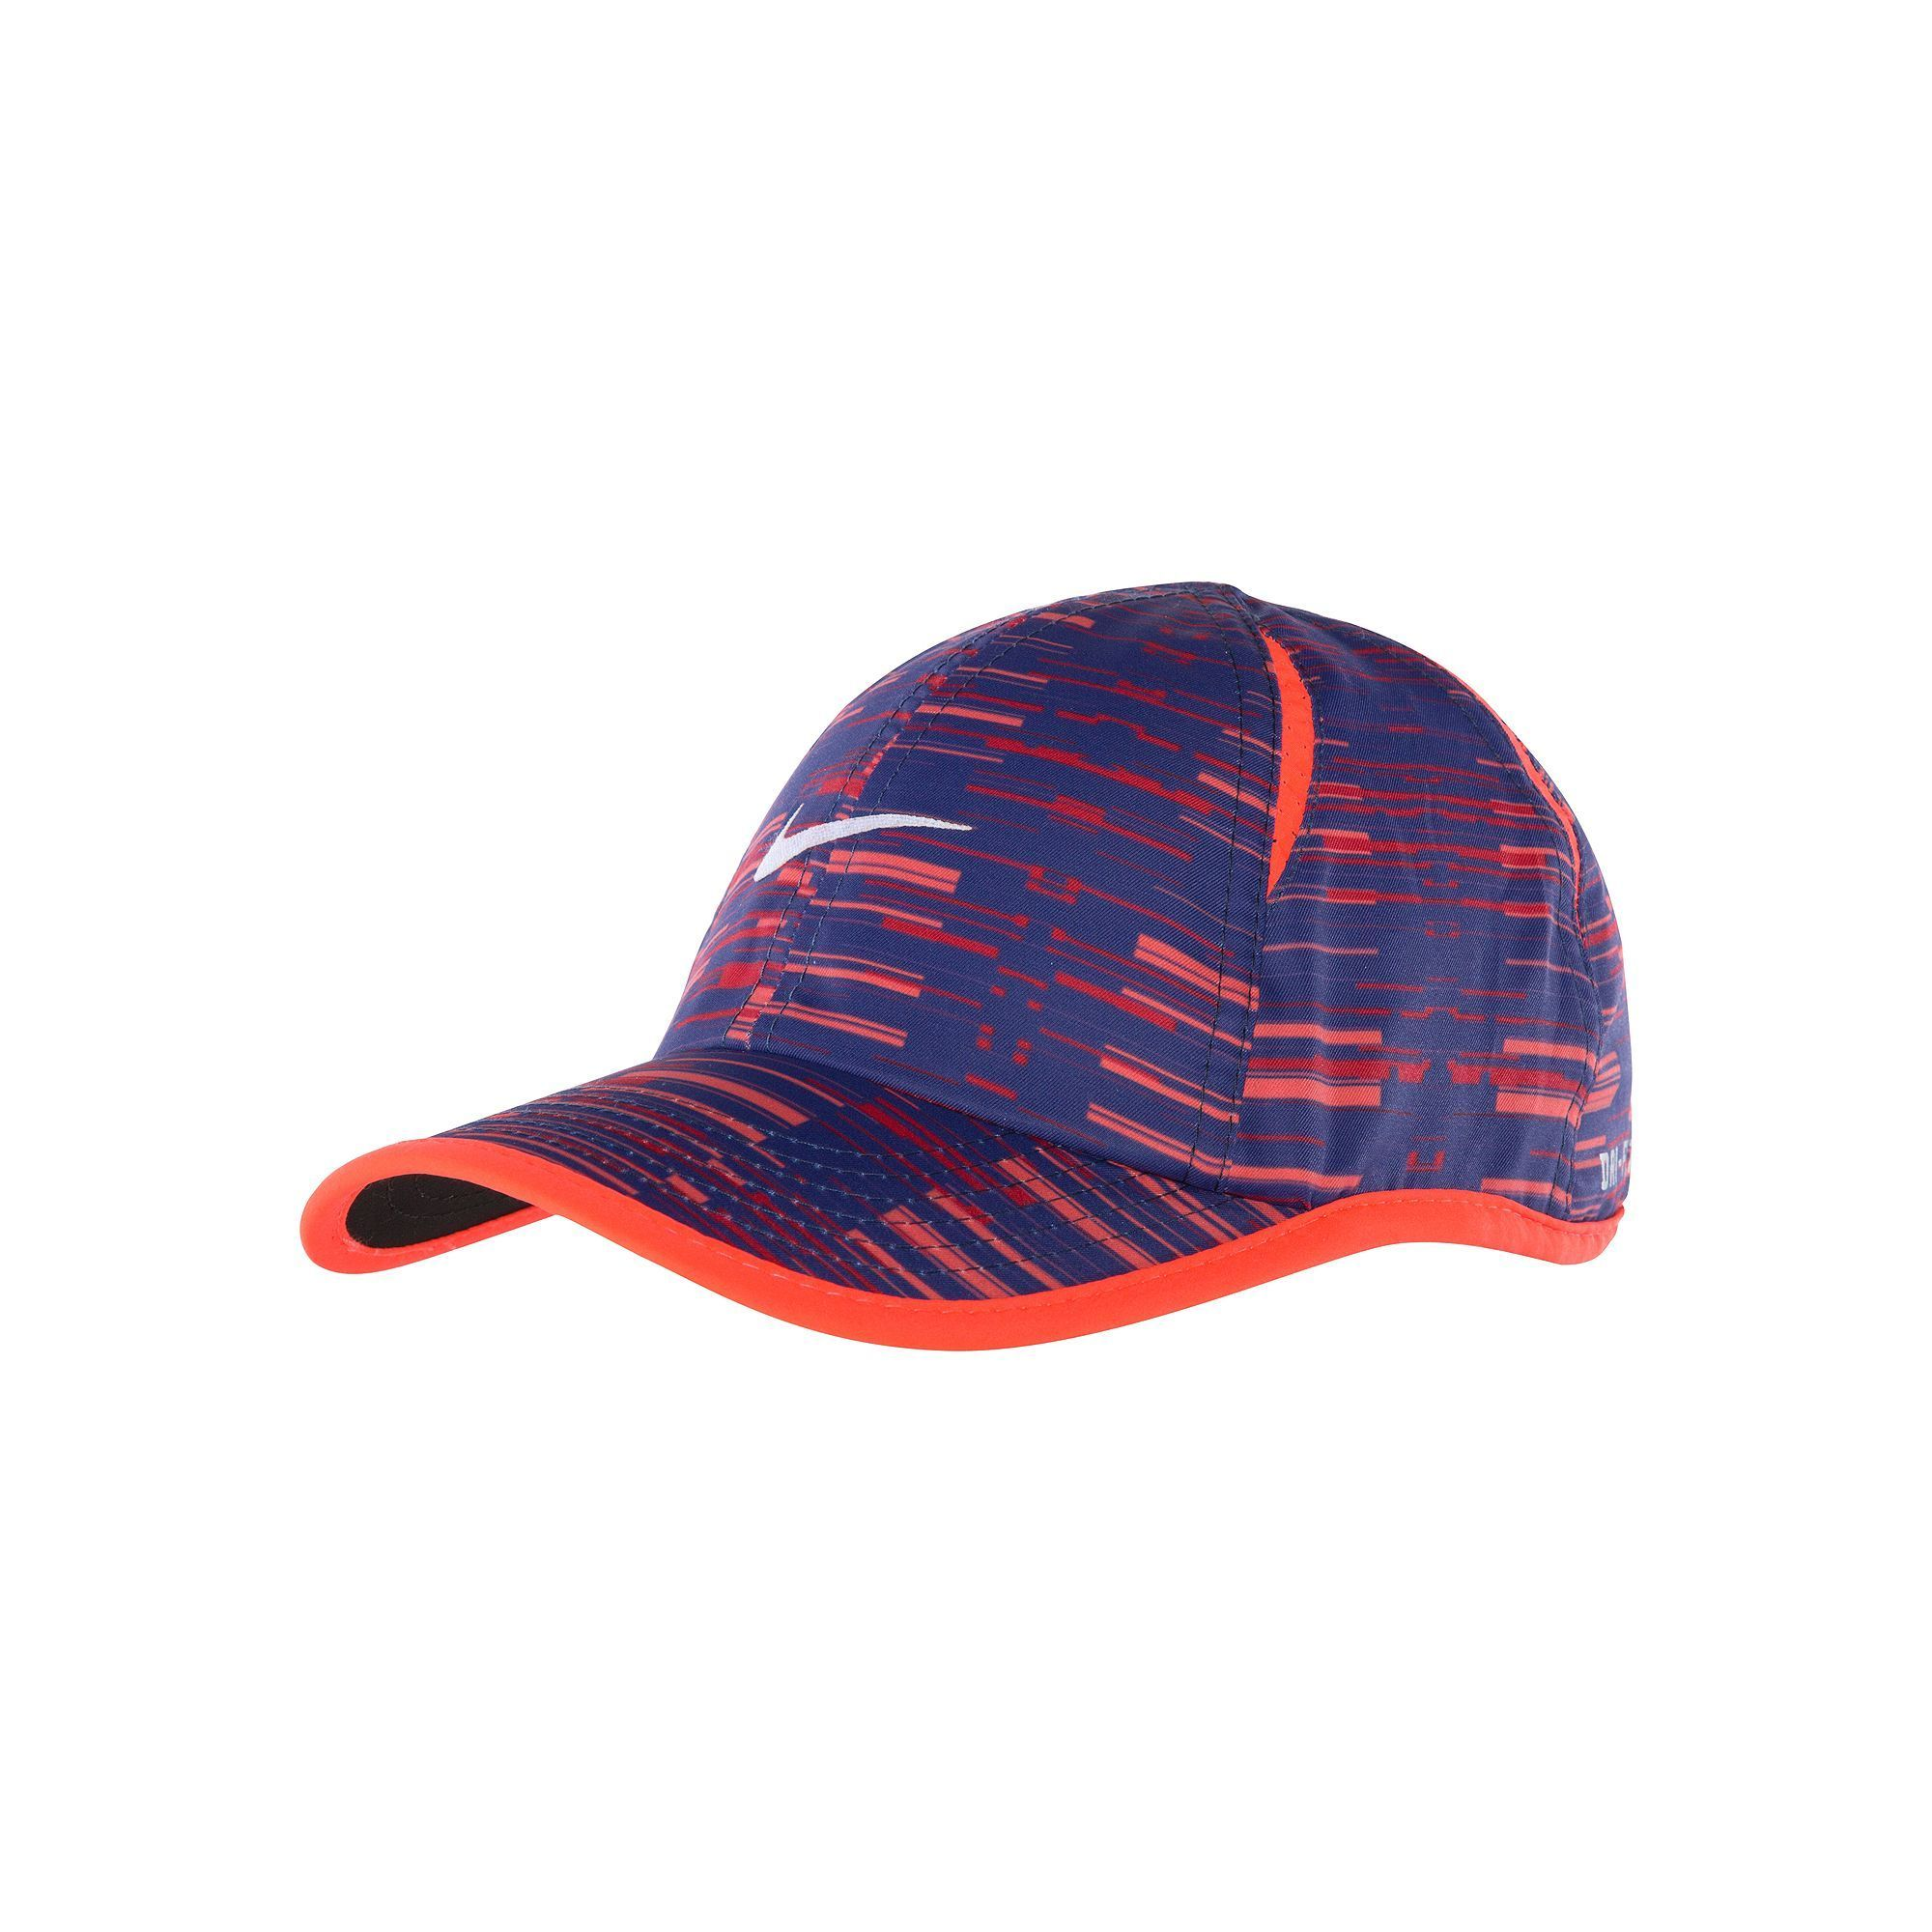 d696bf84313 Toddler Boy Nike Dri-FIT Printed Feather Light Cap